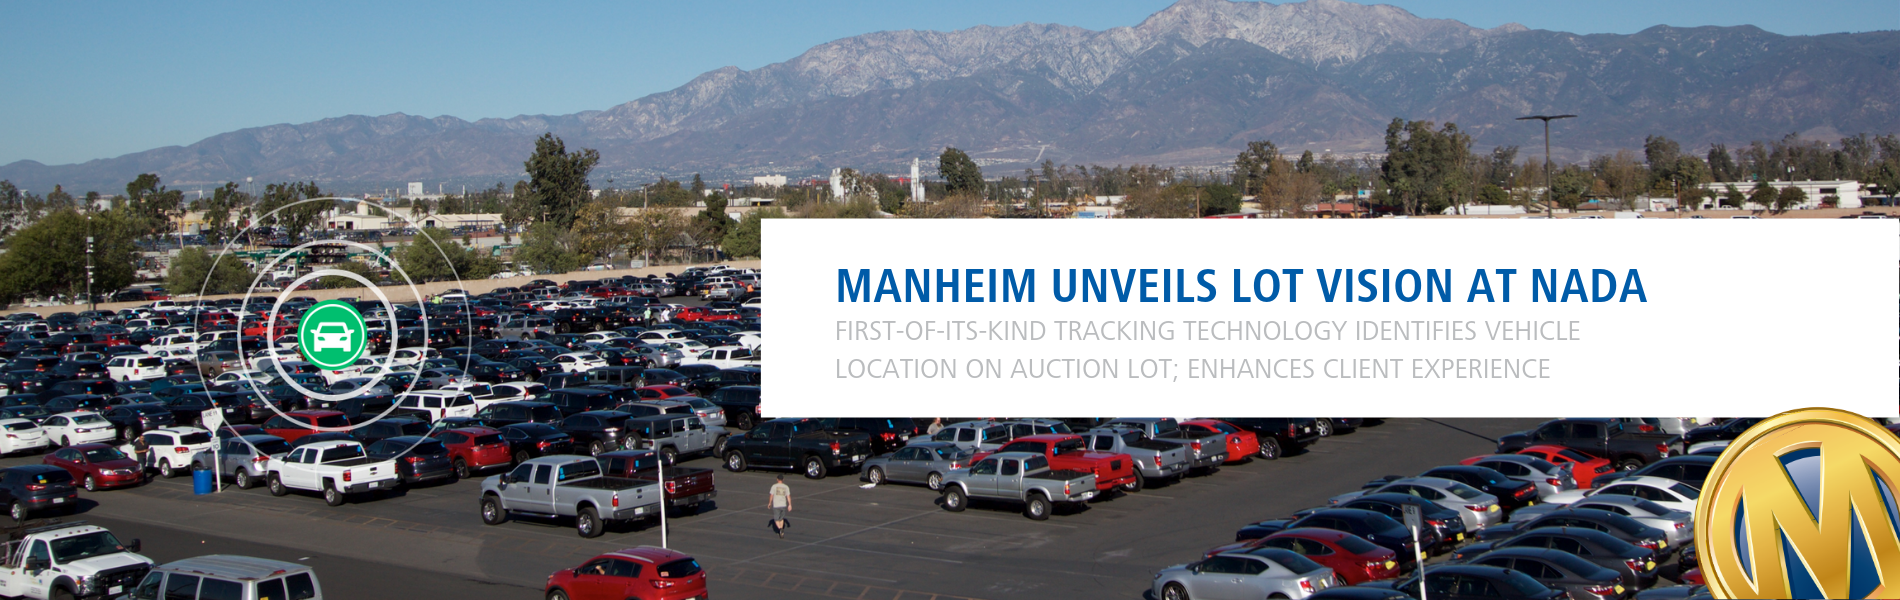 Manheim Unveils Lot Vision at NADA: First-of-its-kind Tracking Technology Identifies Vehicle Location on Auction Lot; Enhances Client Experience